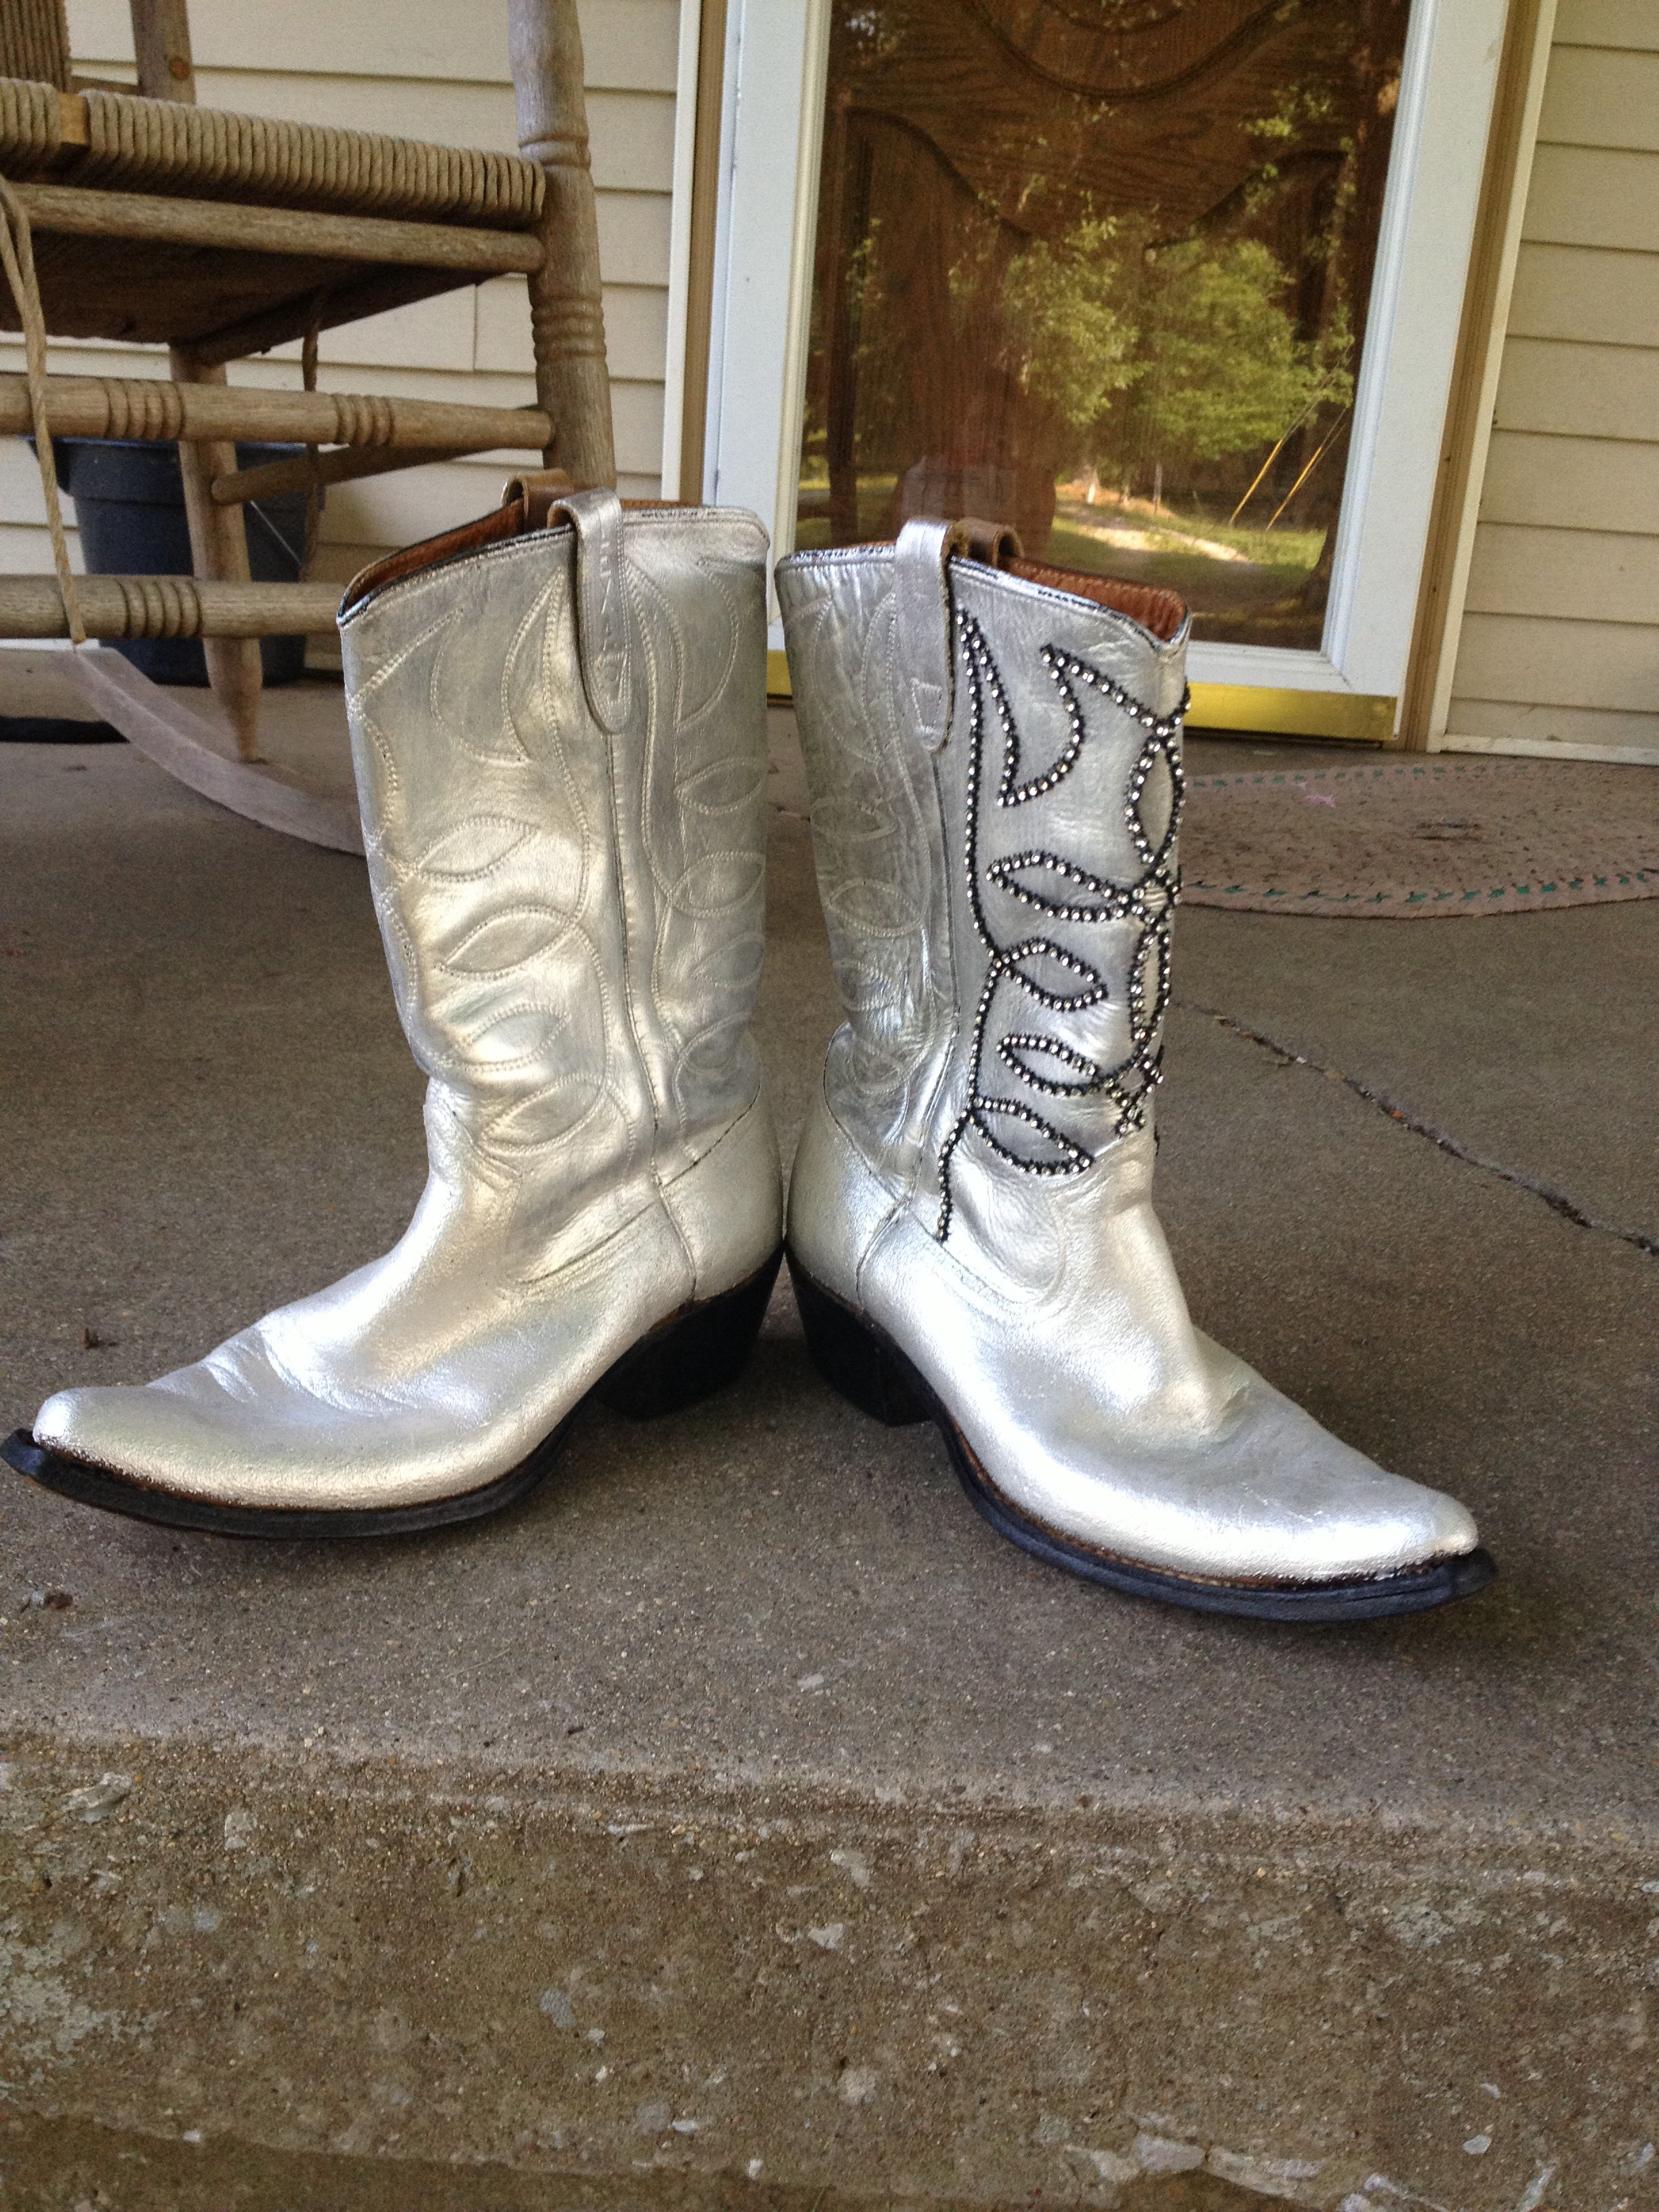 Painted & bedazzled boots